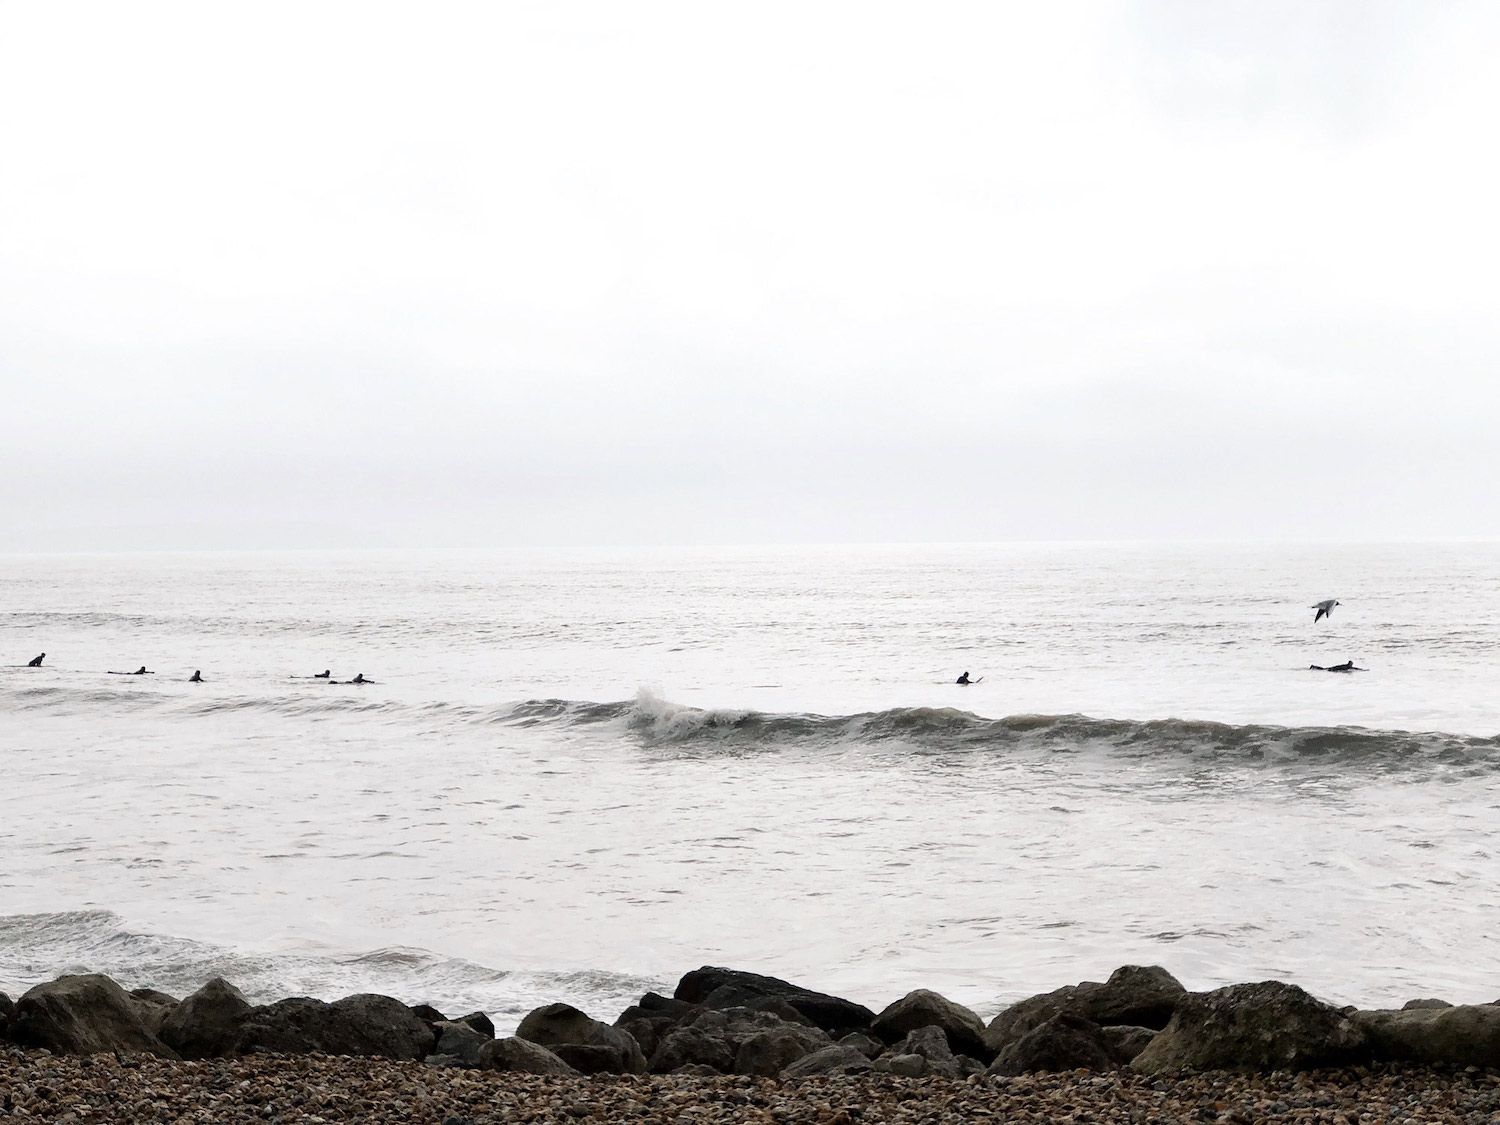 3-surfers-and-seagulls